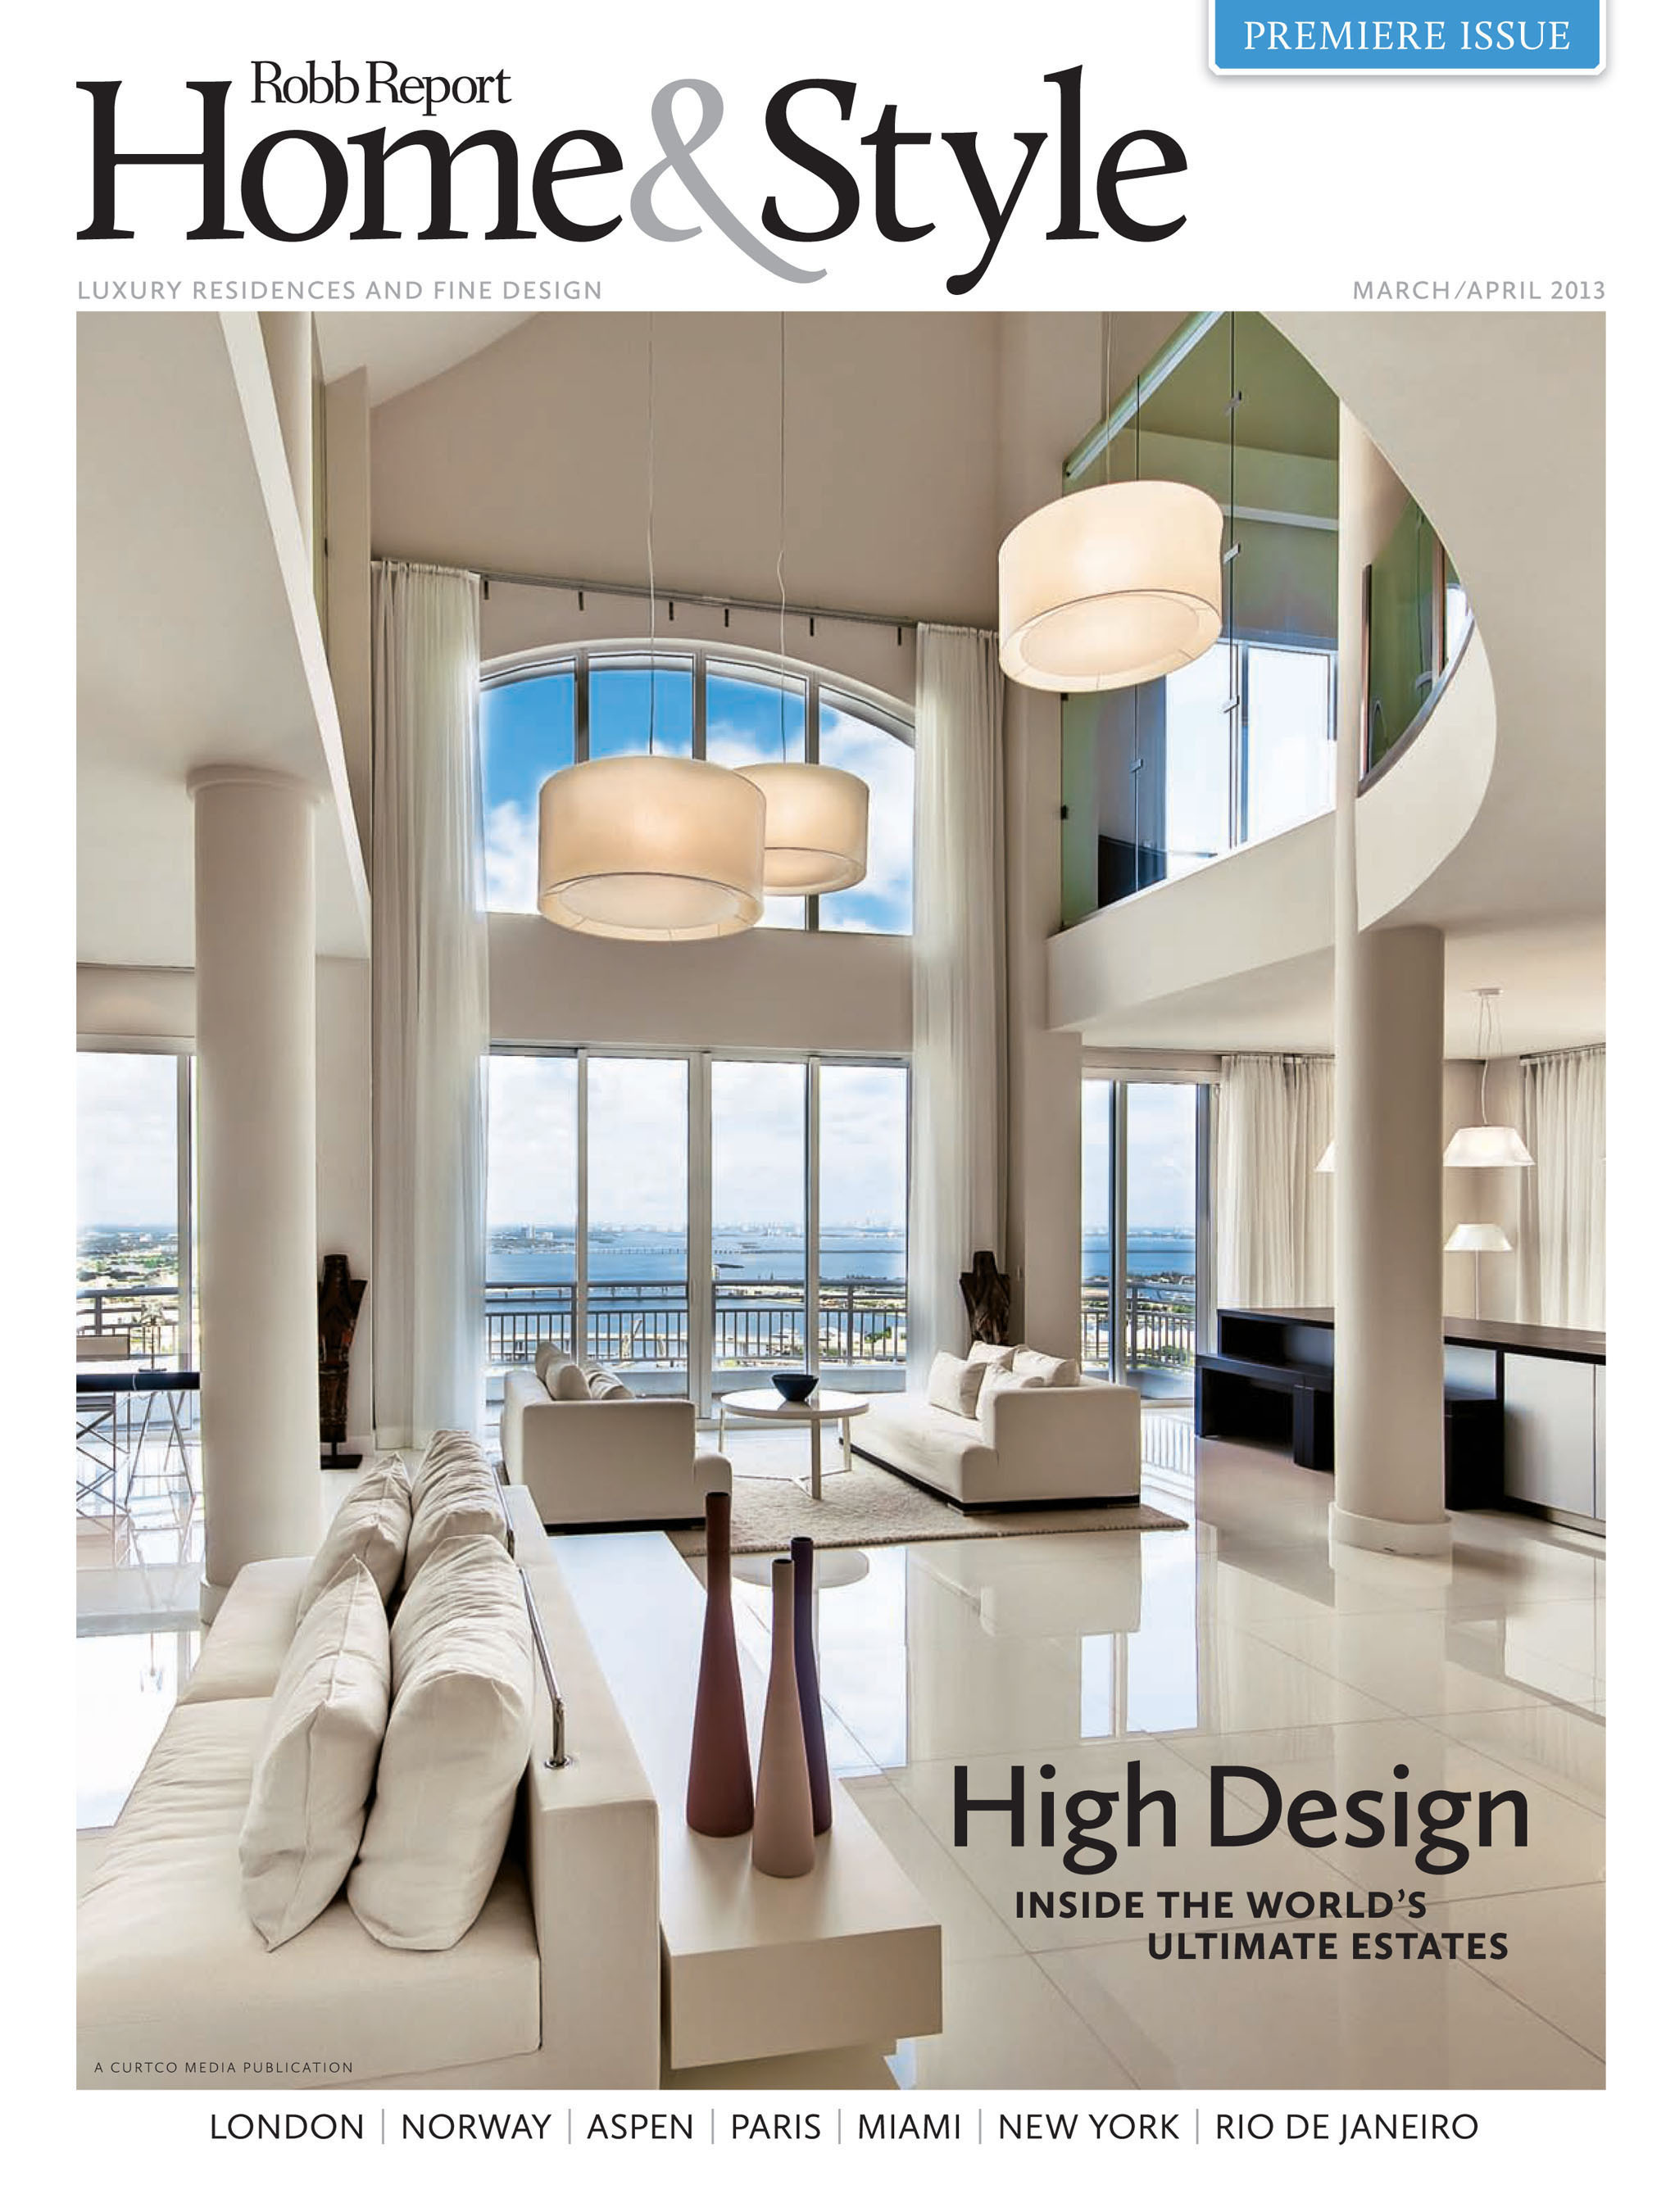 Home Style Will Be Poly Bagged With Robb Report And Delivered To Its